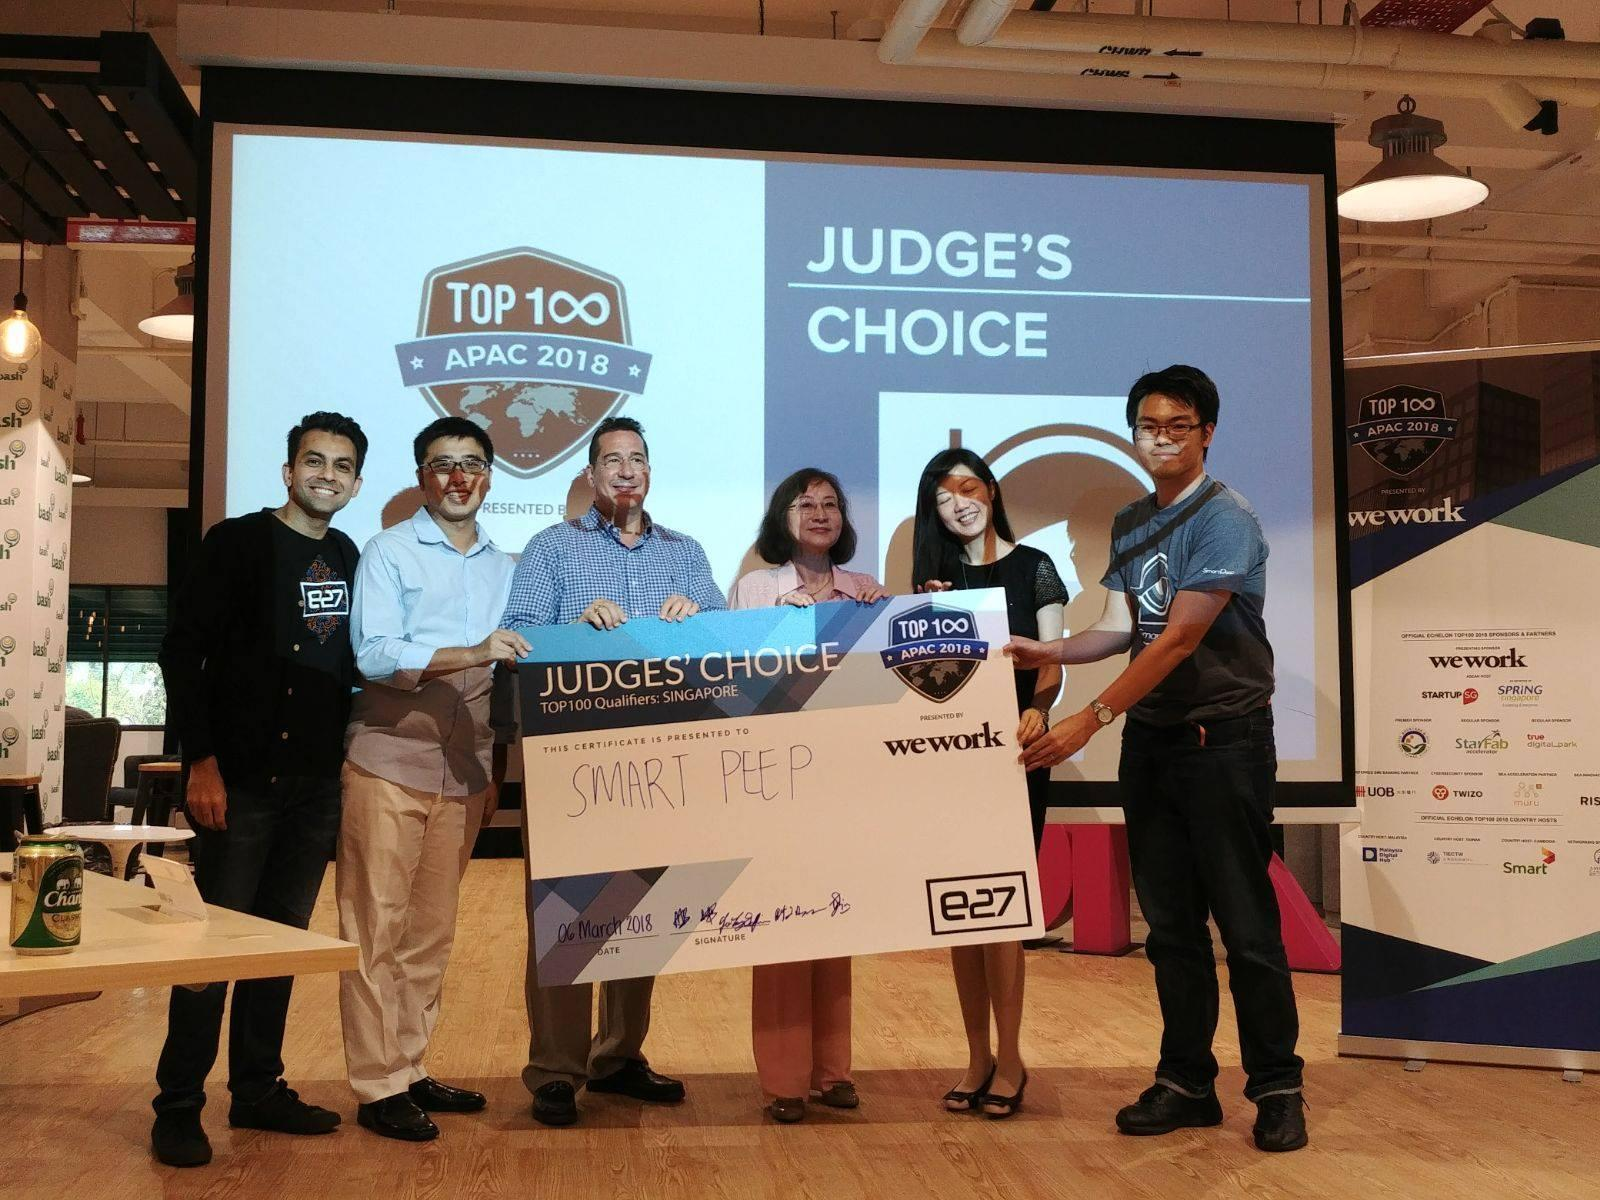 SmartPeep's innovative elderly safety monitoring technology wins Judges' Choice Award at Echelon TOP 100 APAC 2018